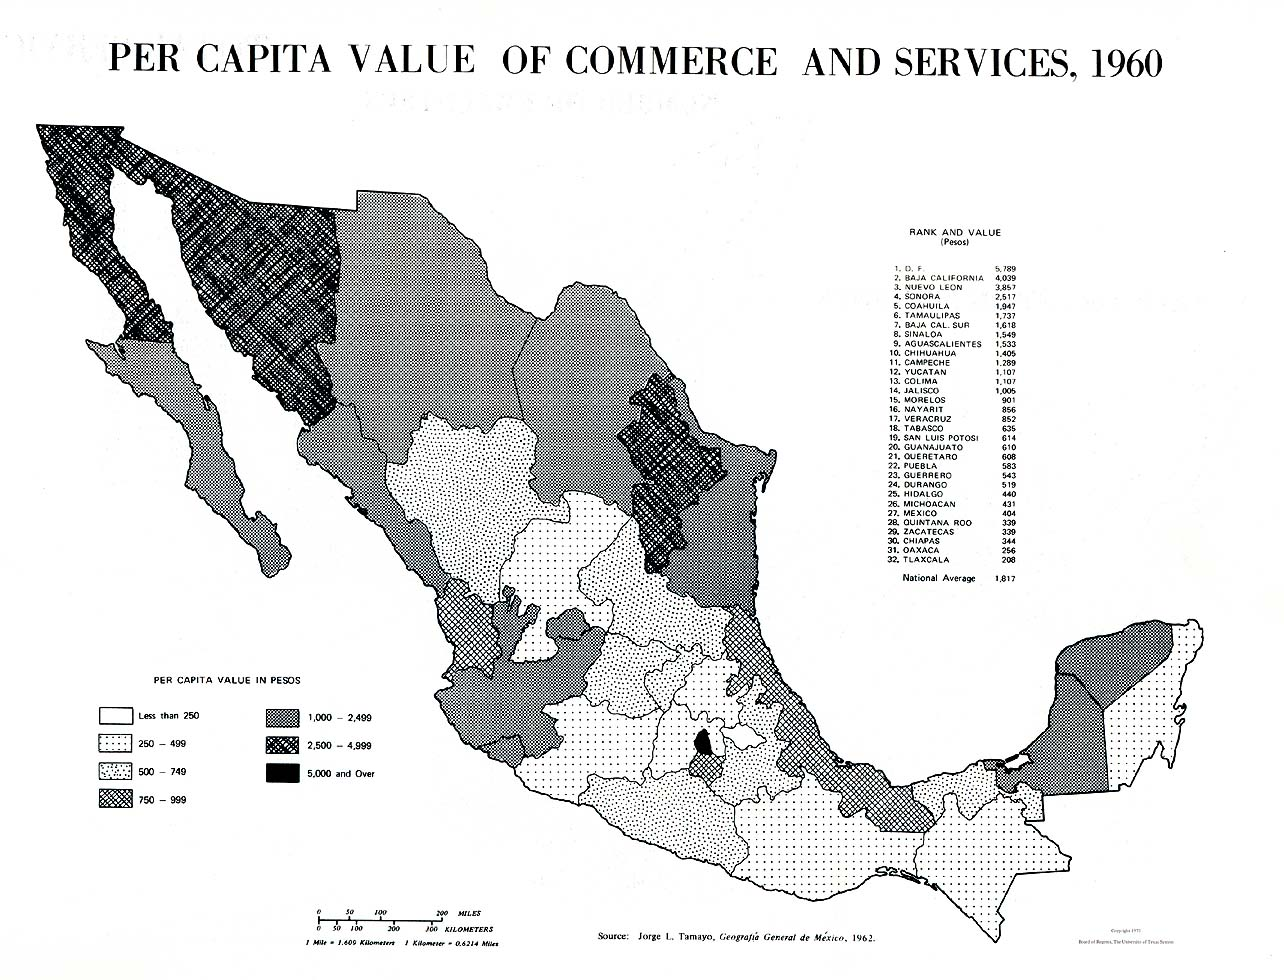 Per Capita Value of Commerce and Services Map, Mexico 1960